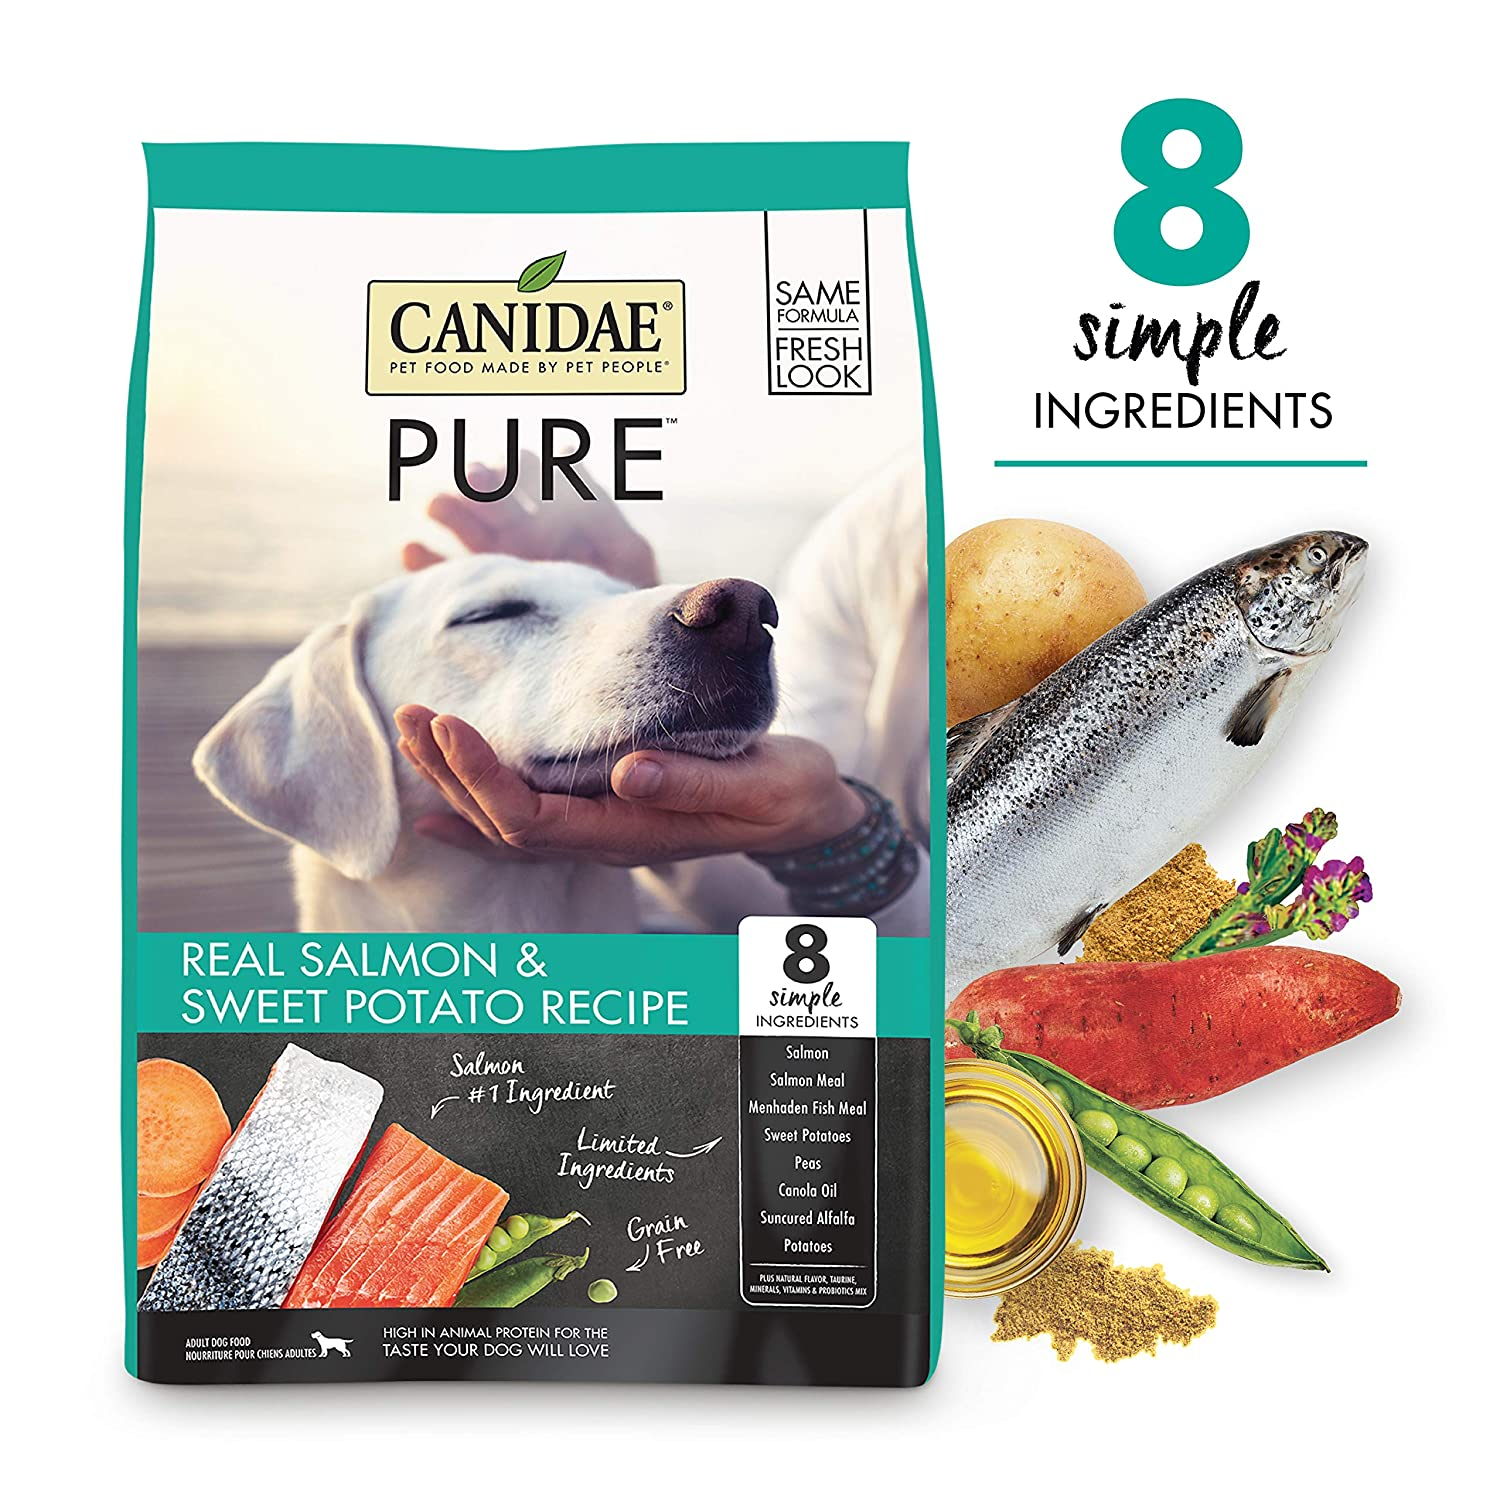 9. CANIDAE Grain-Free Pure Real Salmon & Sweet Potato Recipe